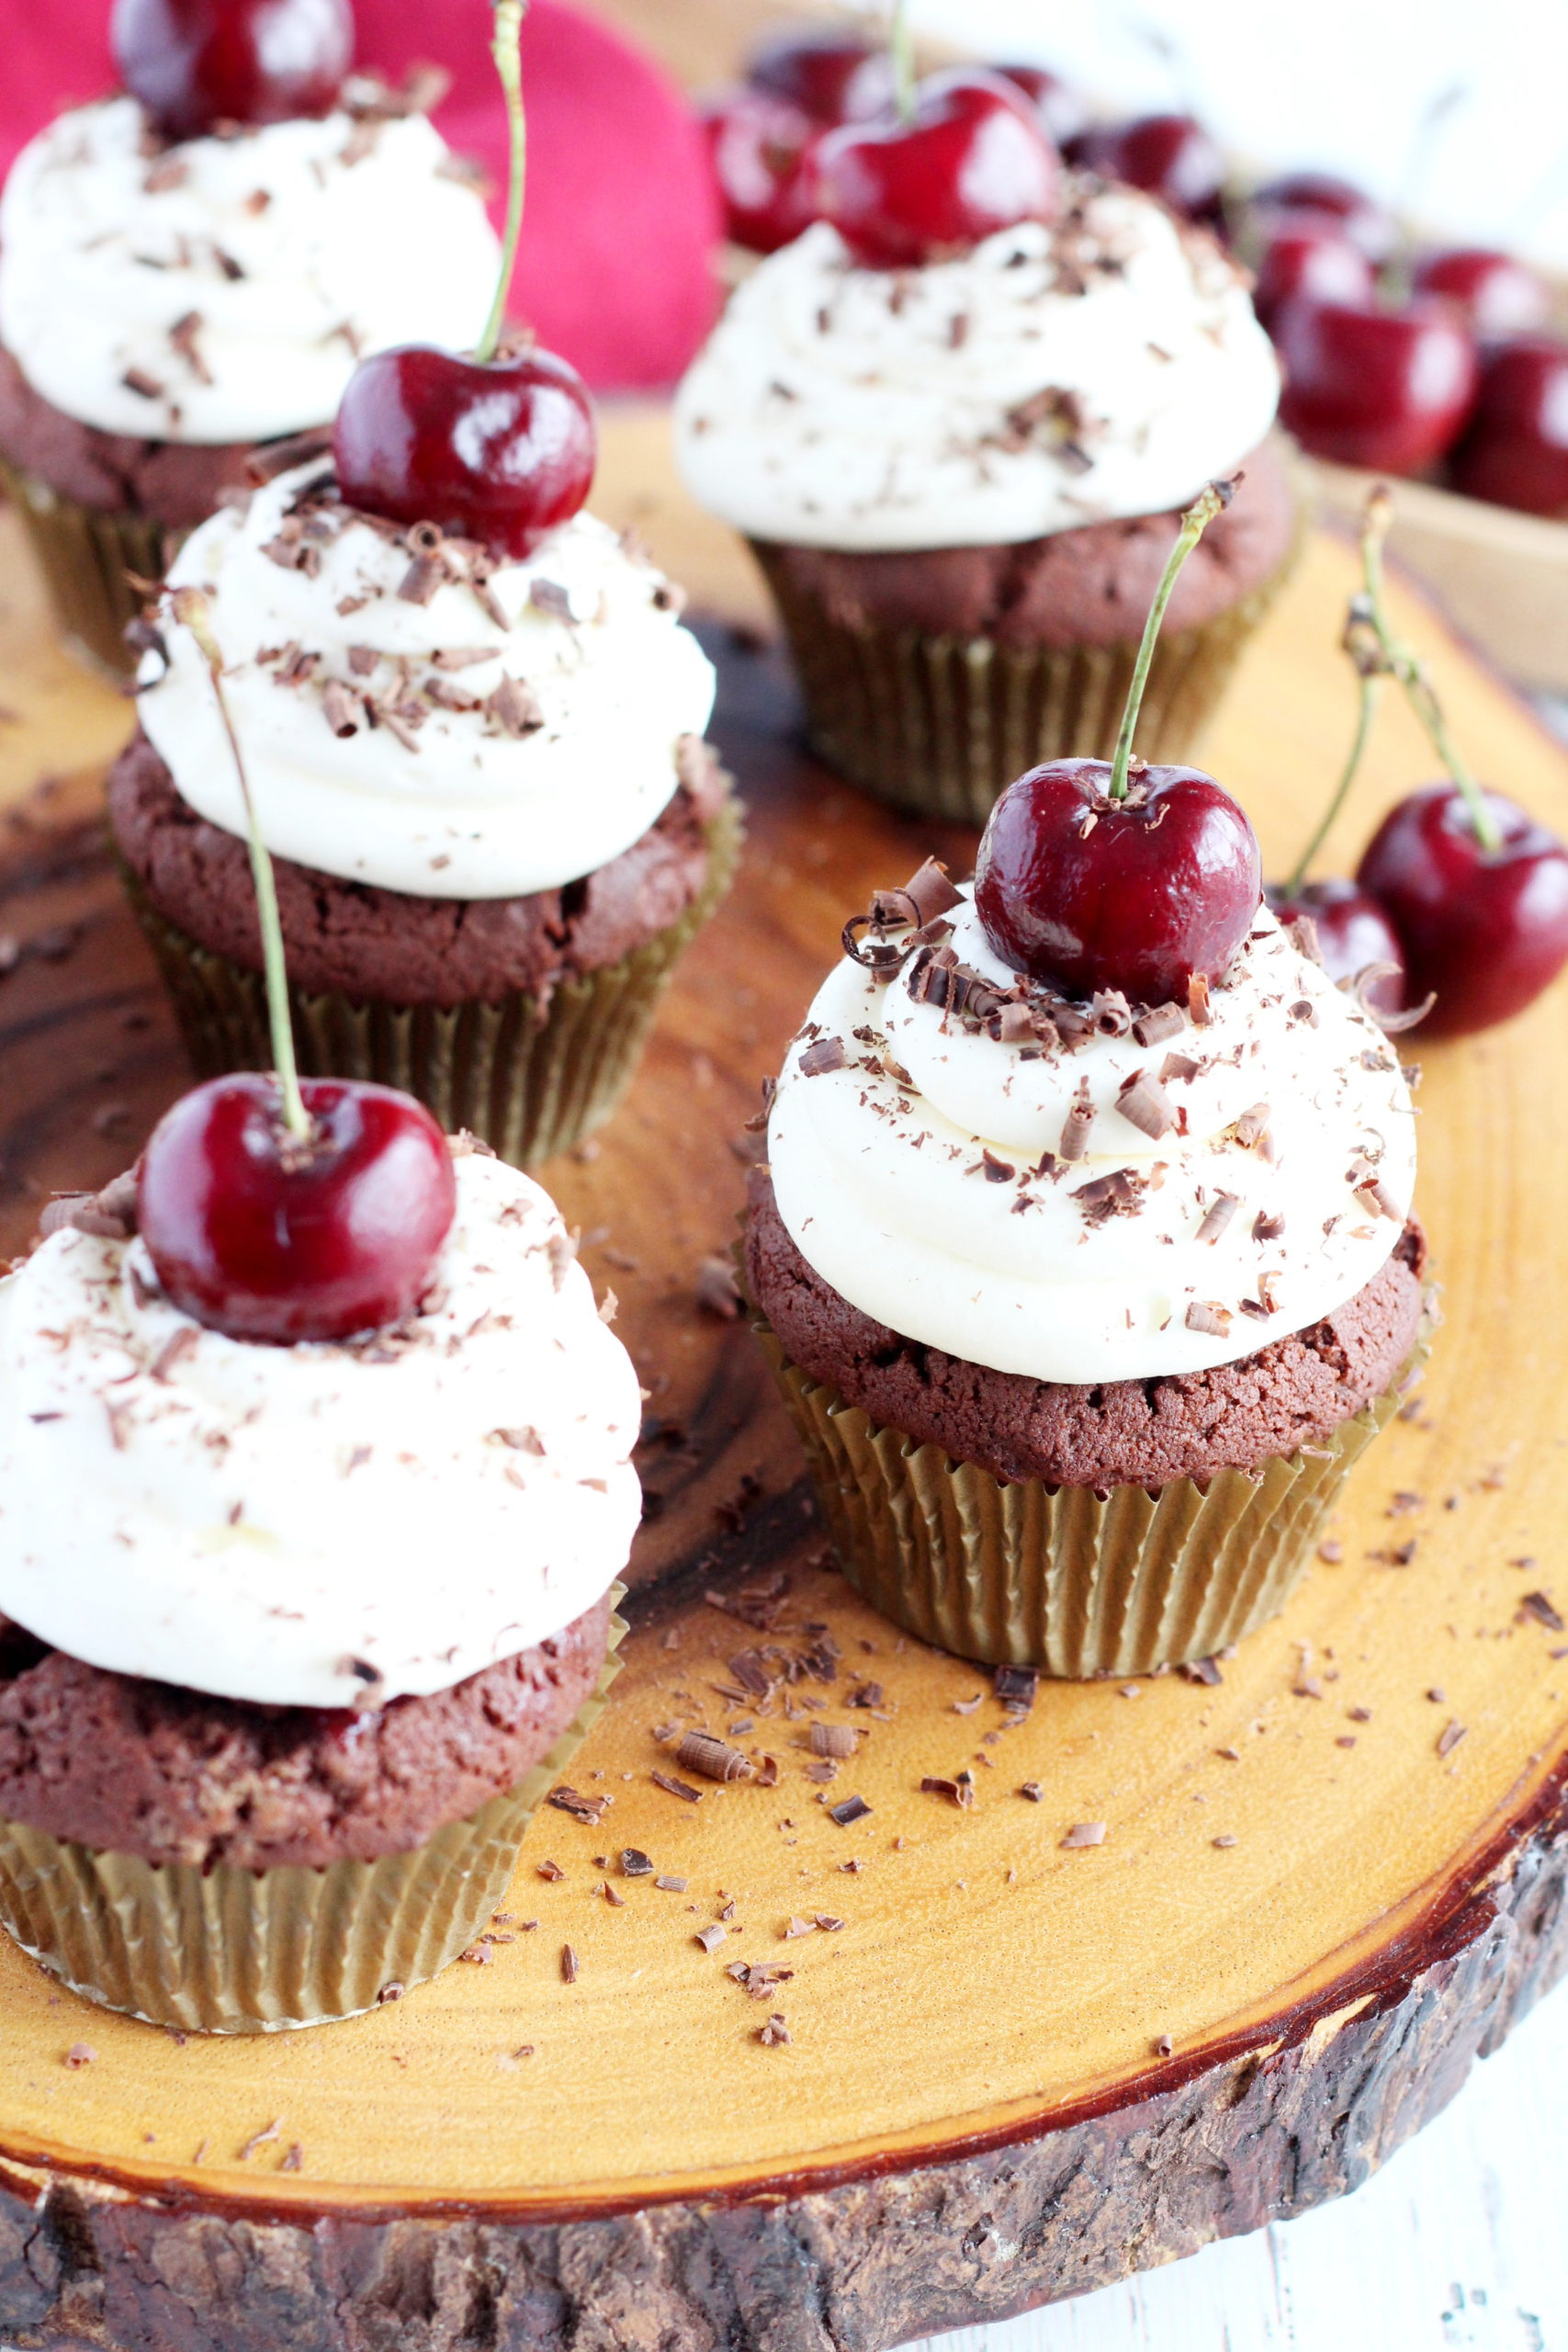 cupcakes with cherries